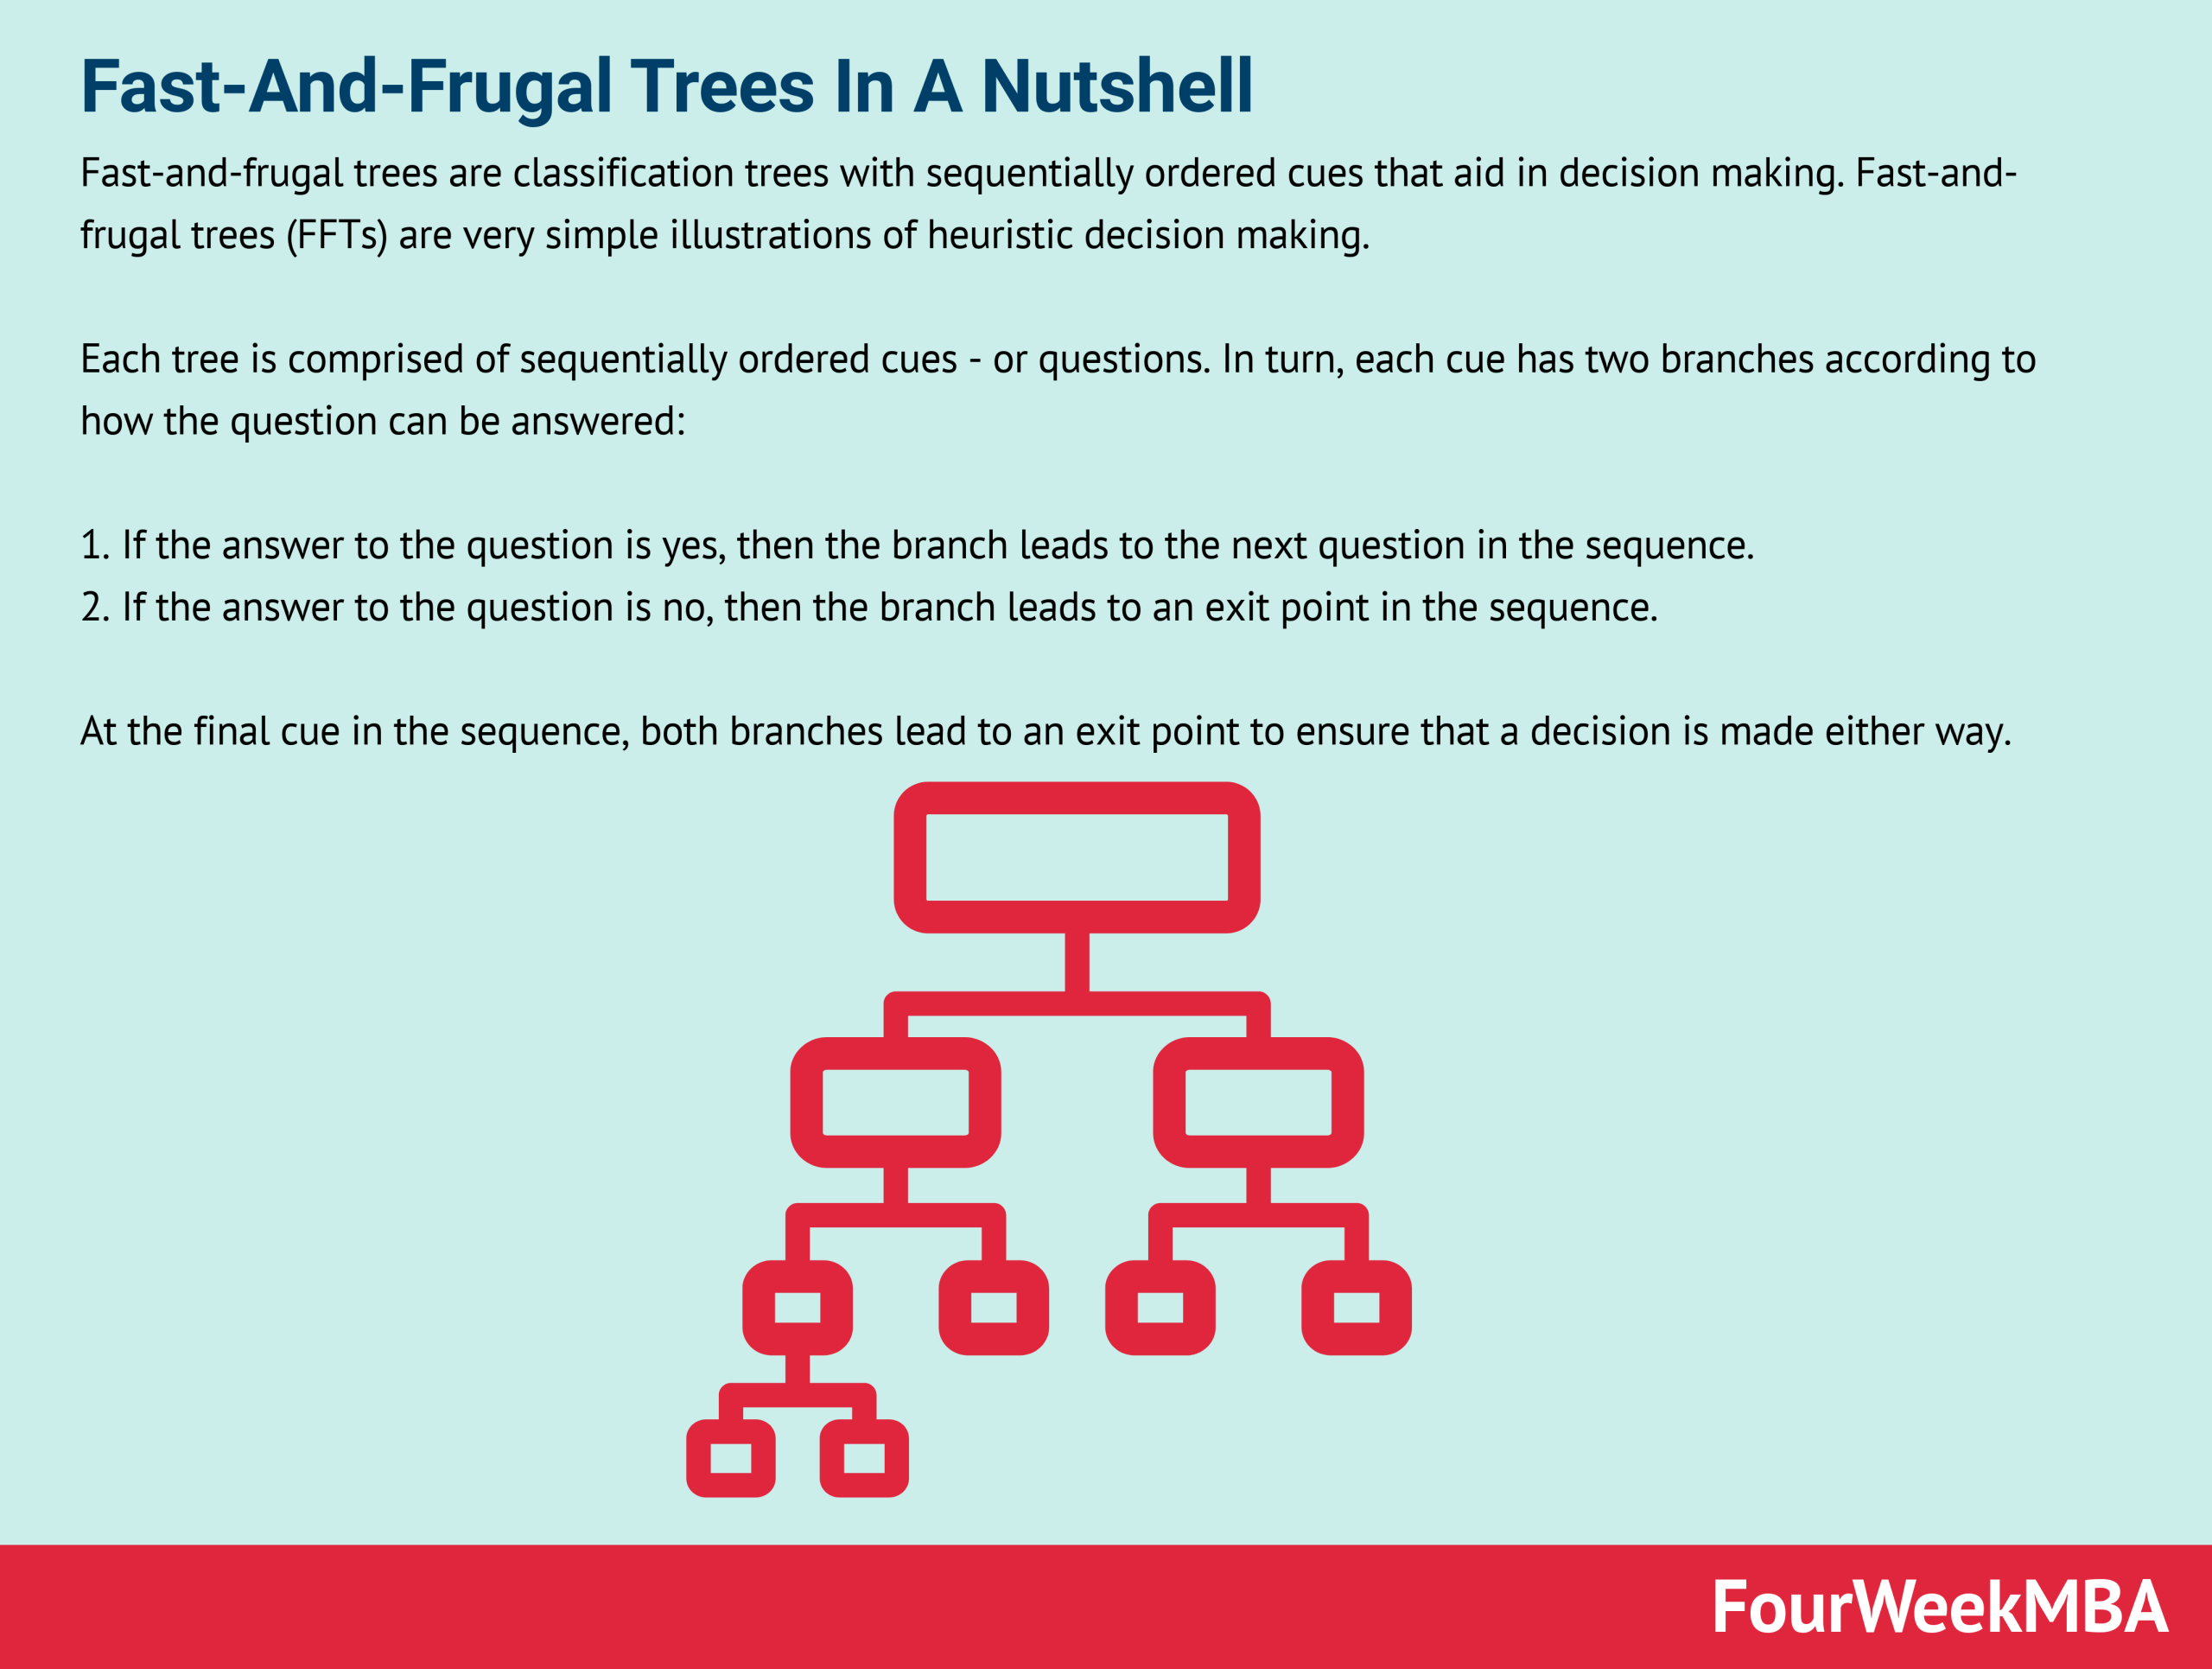 Fast-And-Frugal Trees In A Nutshell